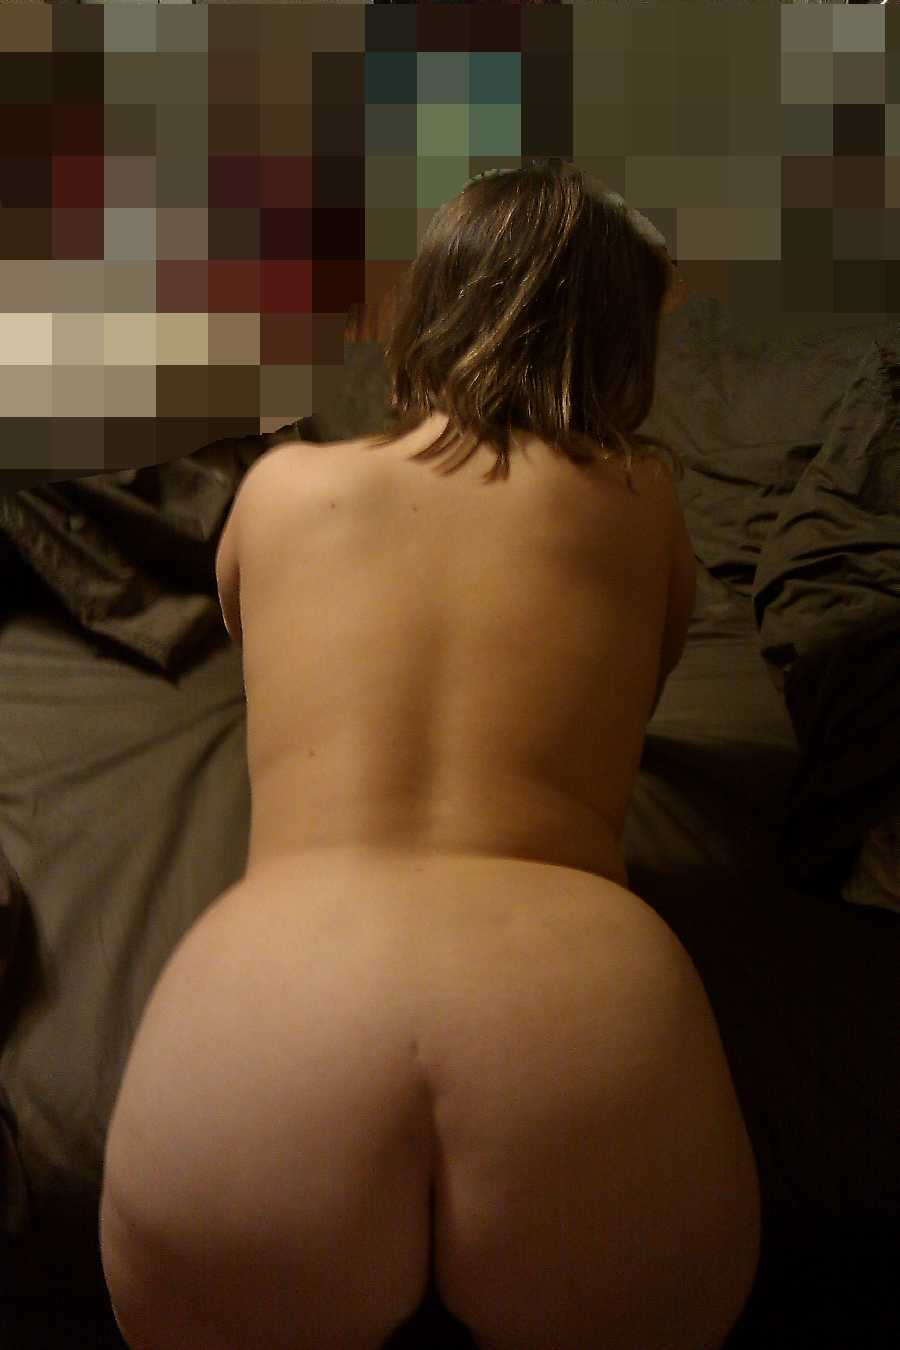 Cuckold secret my wife fucking bbc i found on craigs list